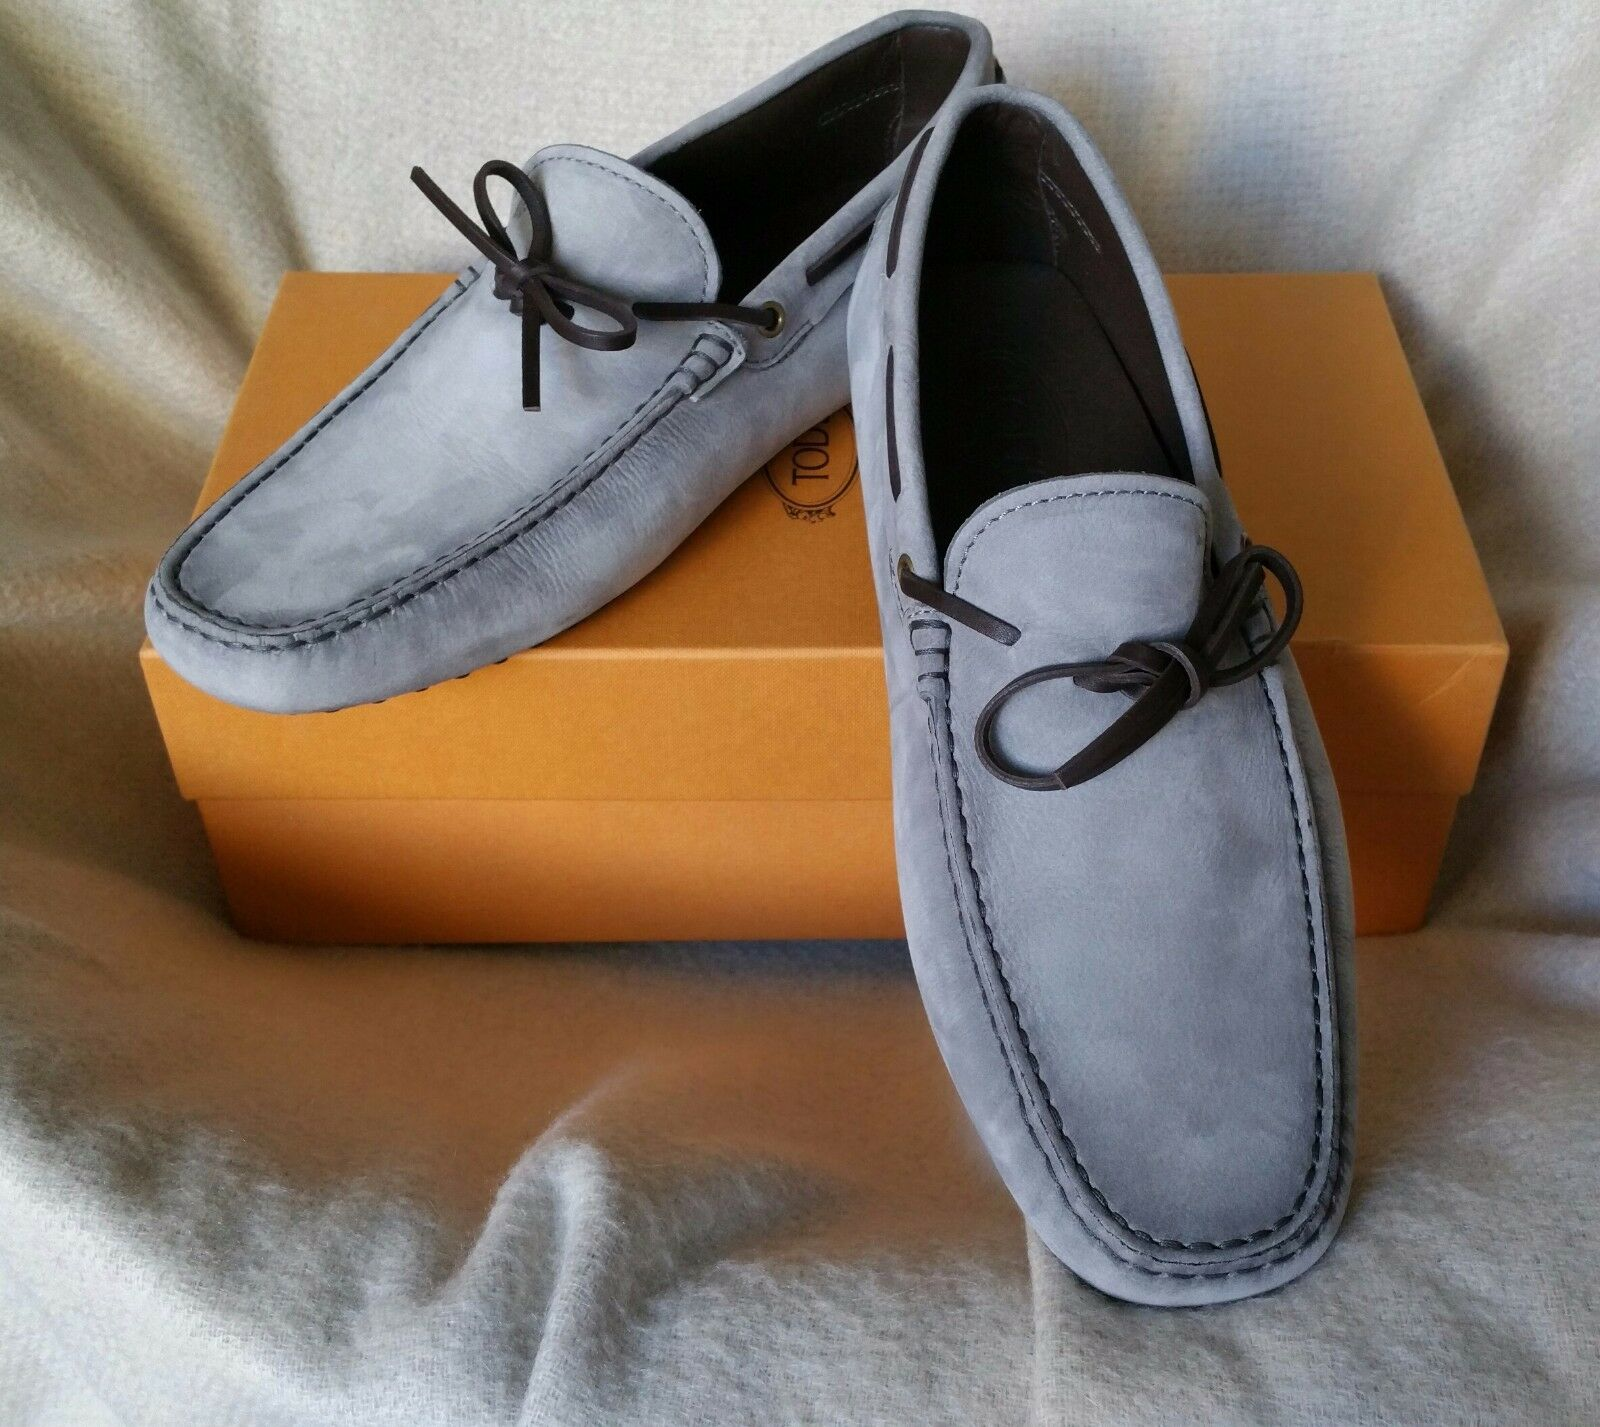 Tod's Grey Nubuck Lace Loafer 10 US Gommini Tie Front Moccasin Tods Shoes Scarpe classiche da uomo